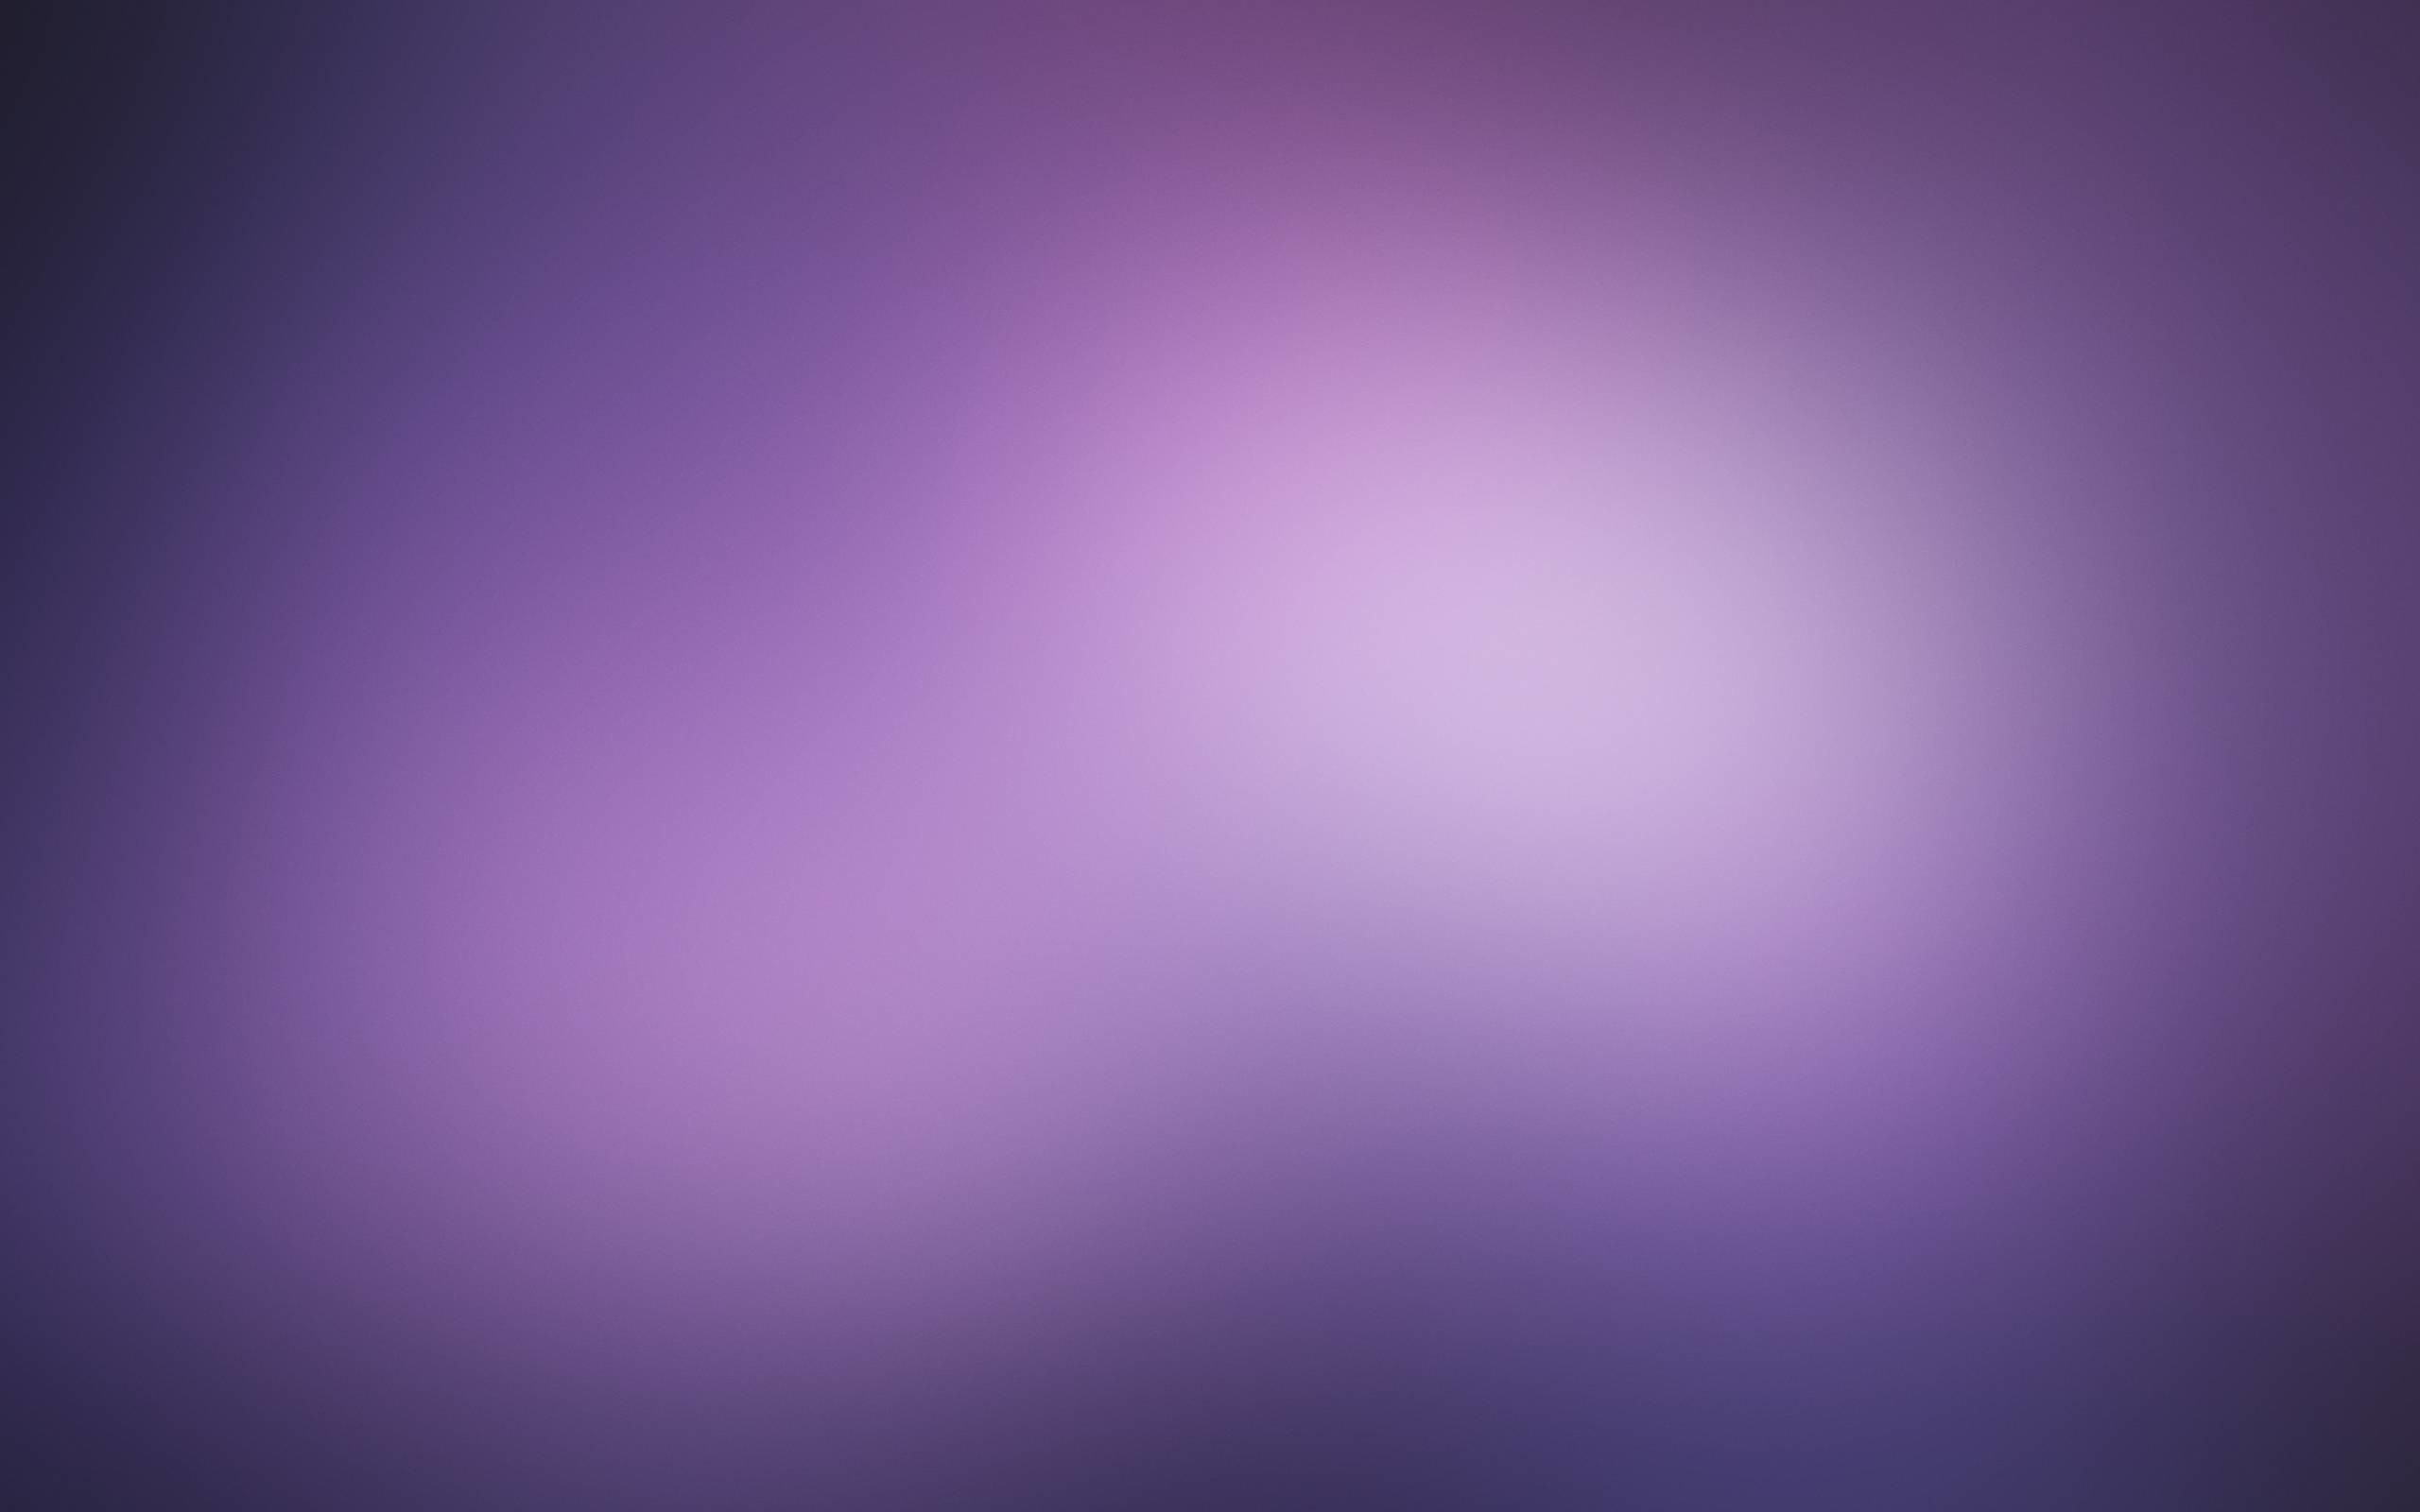 Best Wallpapers For Iphone X App Mauve Wallpaper 183 ①